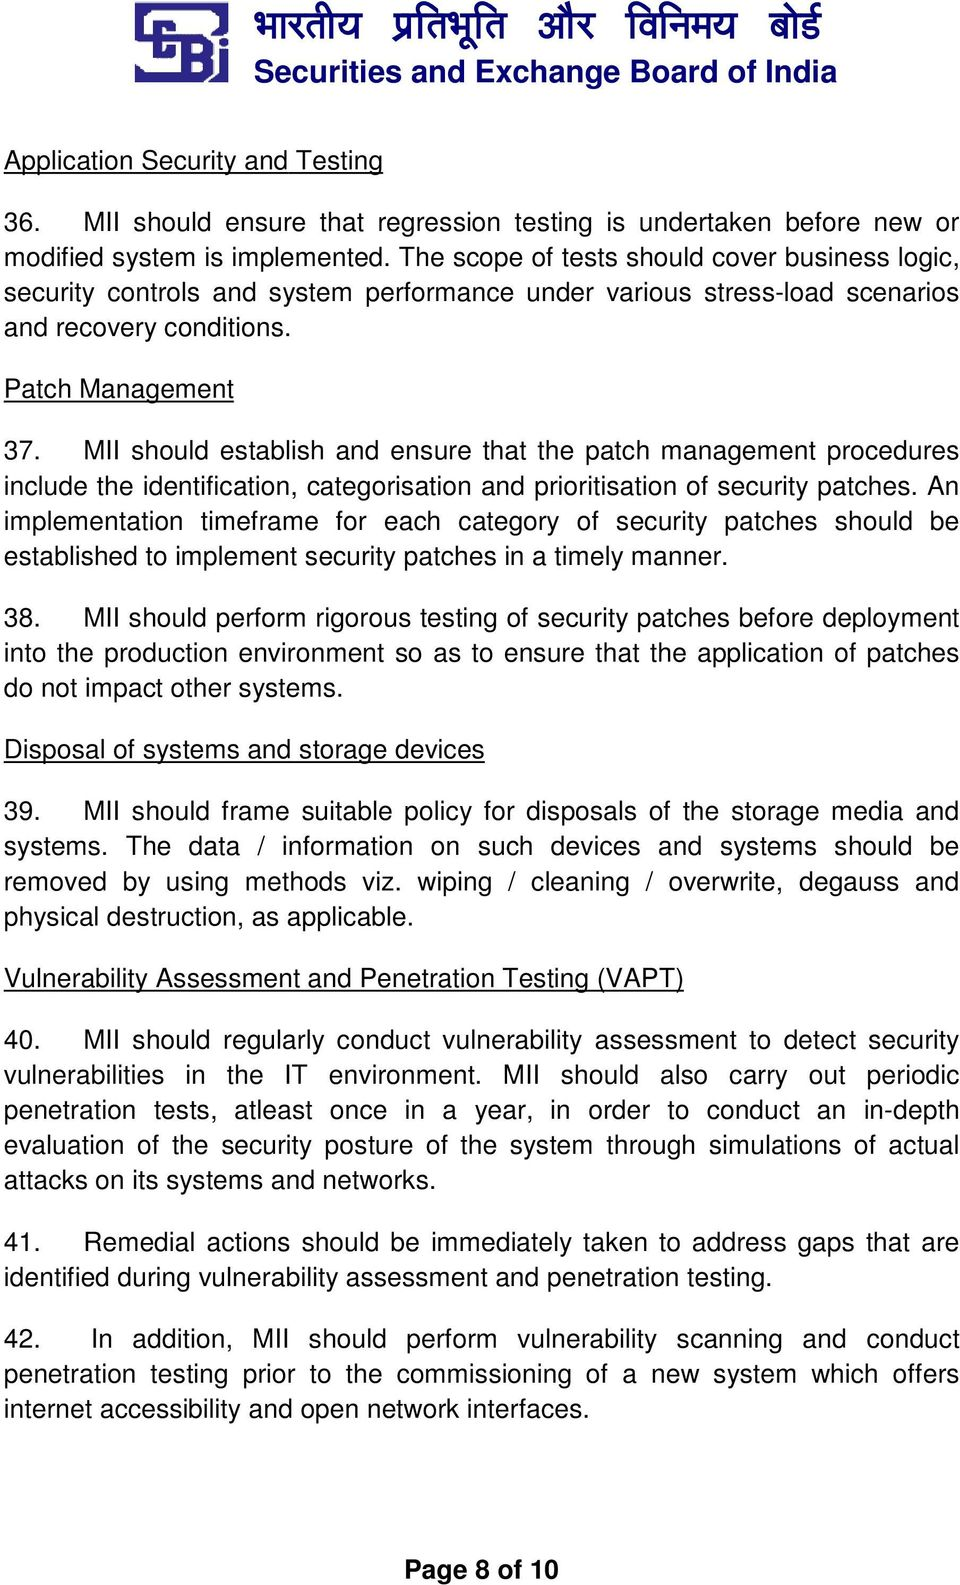 MII should establish and ensure that the patch management procedures include the identification, categorisation and prioritisation of security patches.